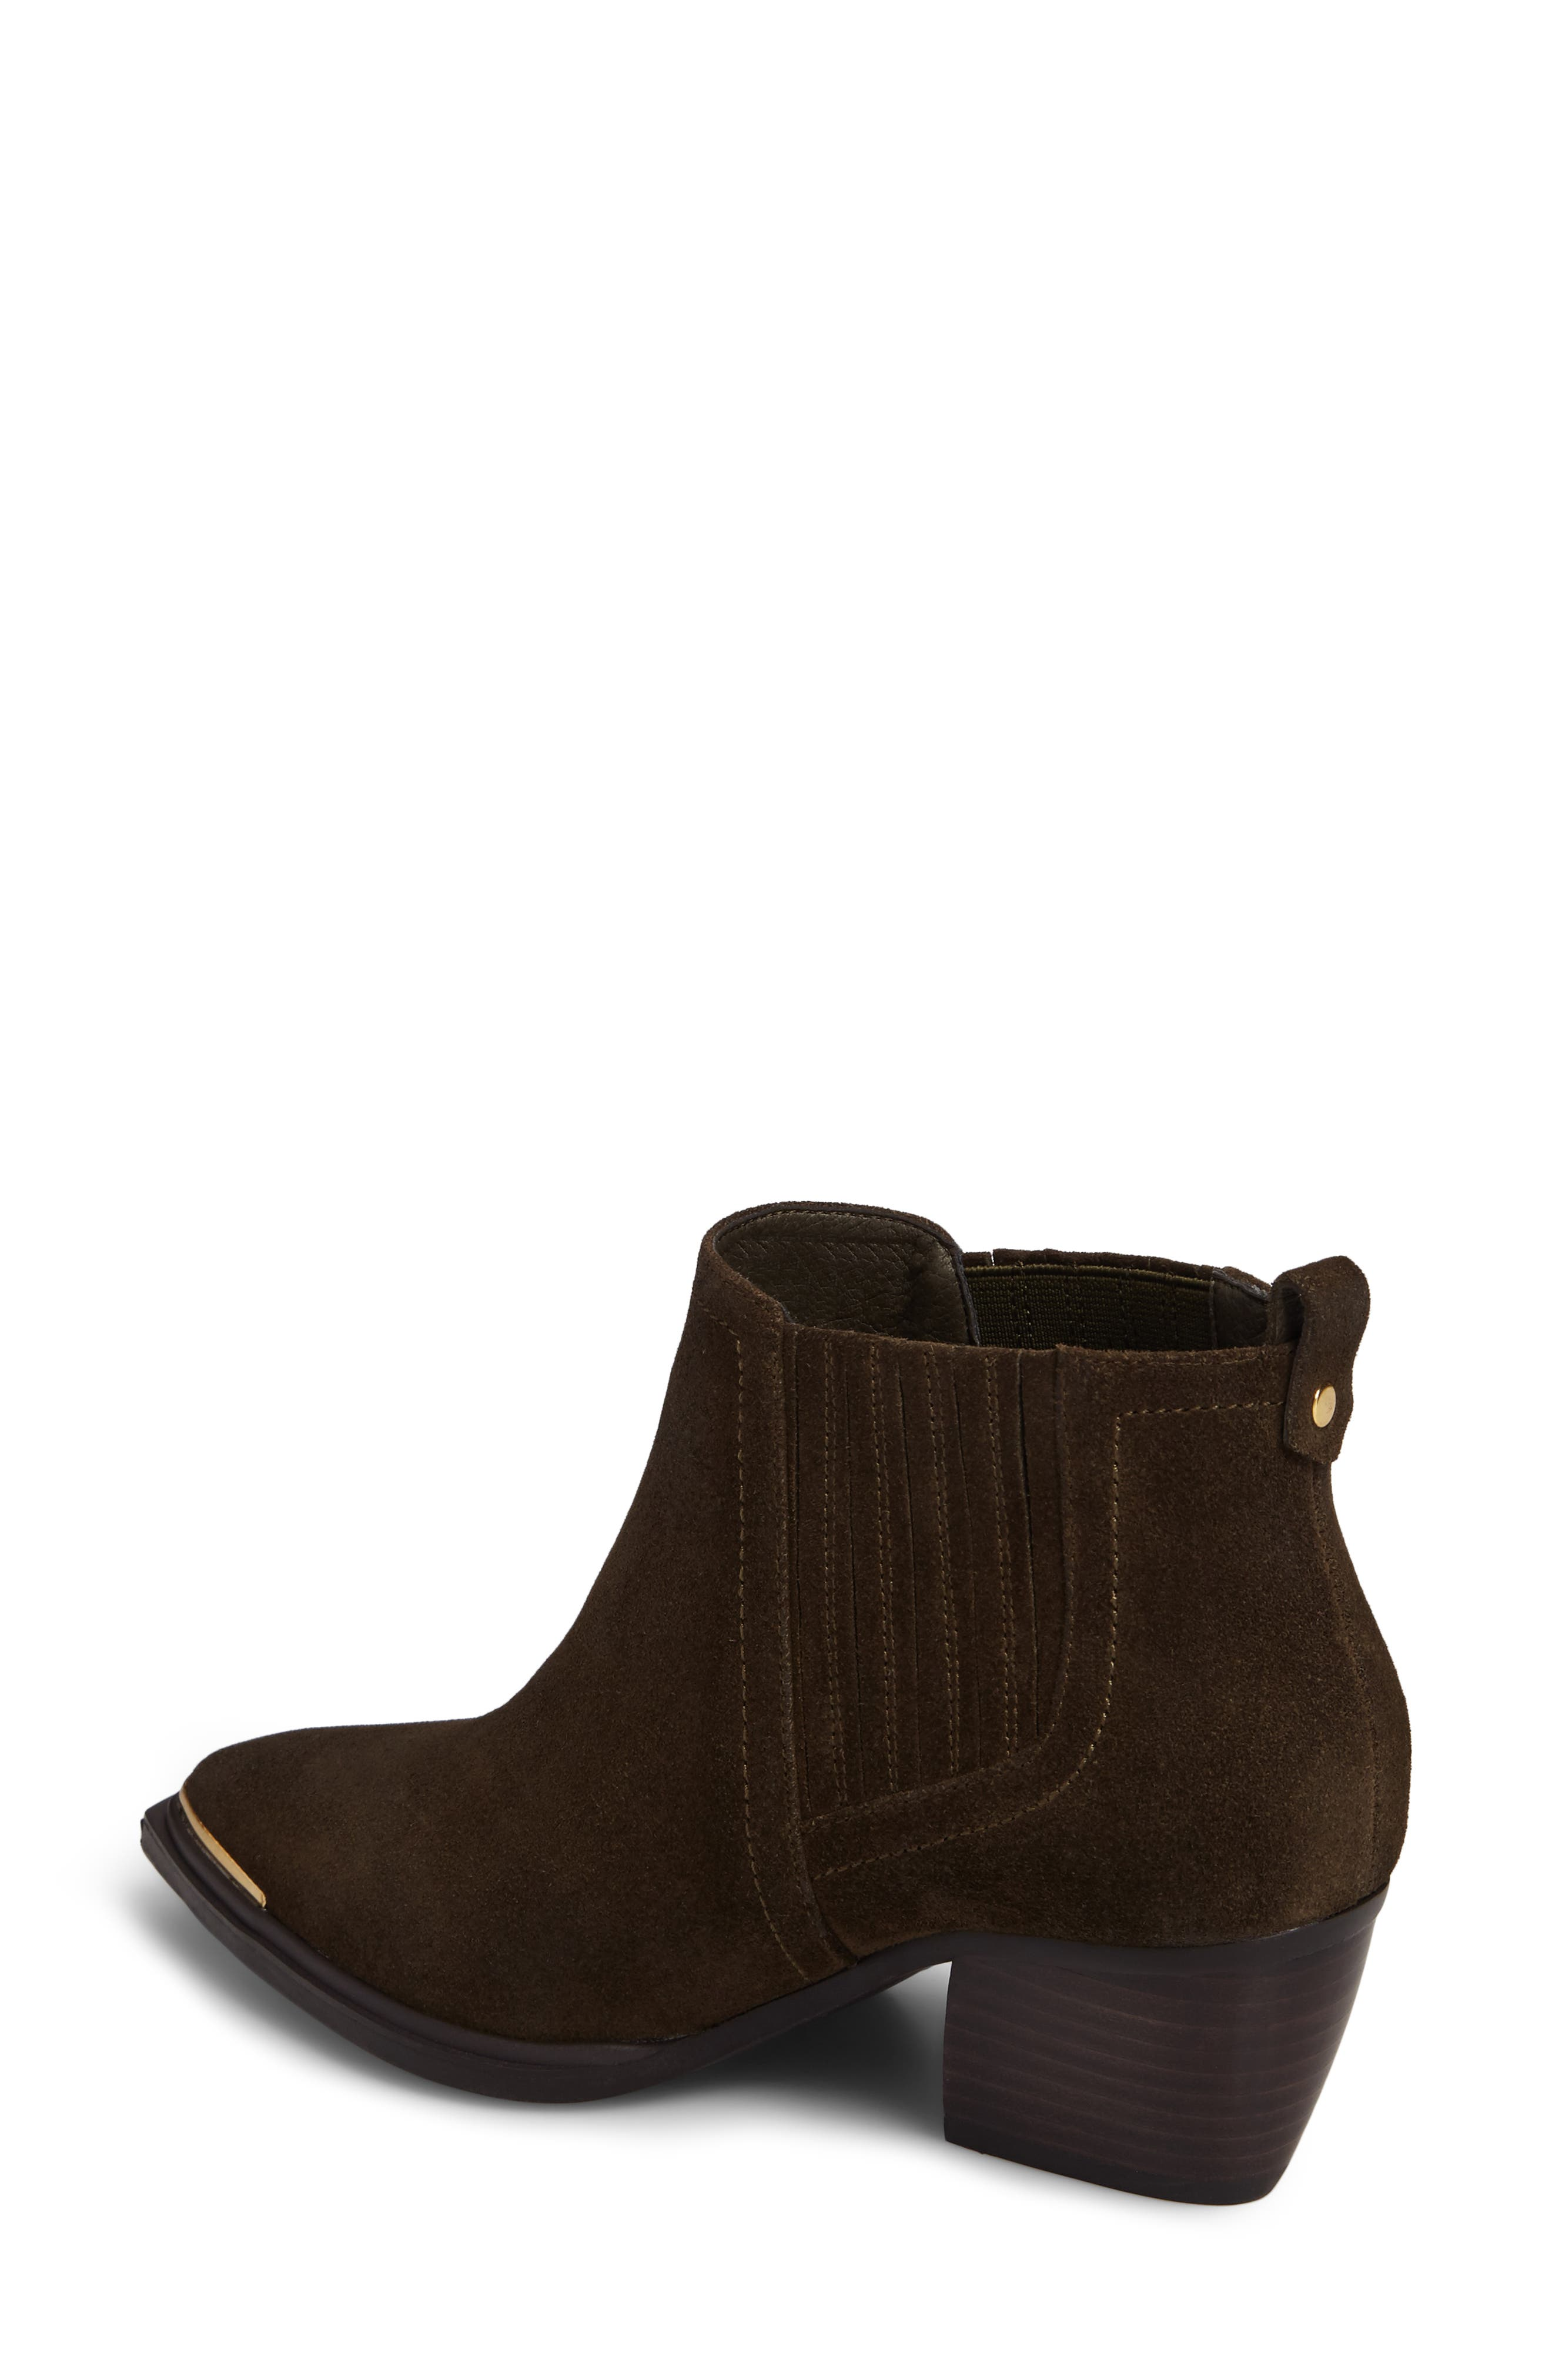 Cardinal Pointy Toe Bootie,                             Alternate thumbnail 2, color,                             Khaki Suede